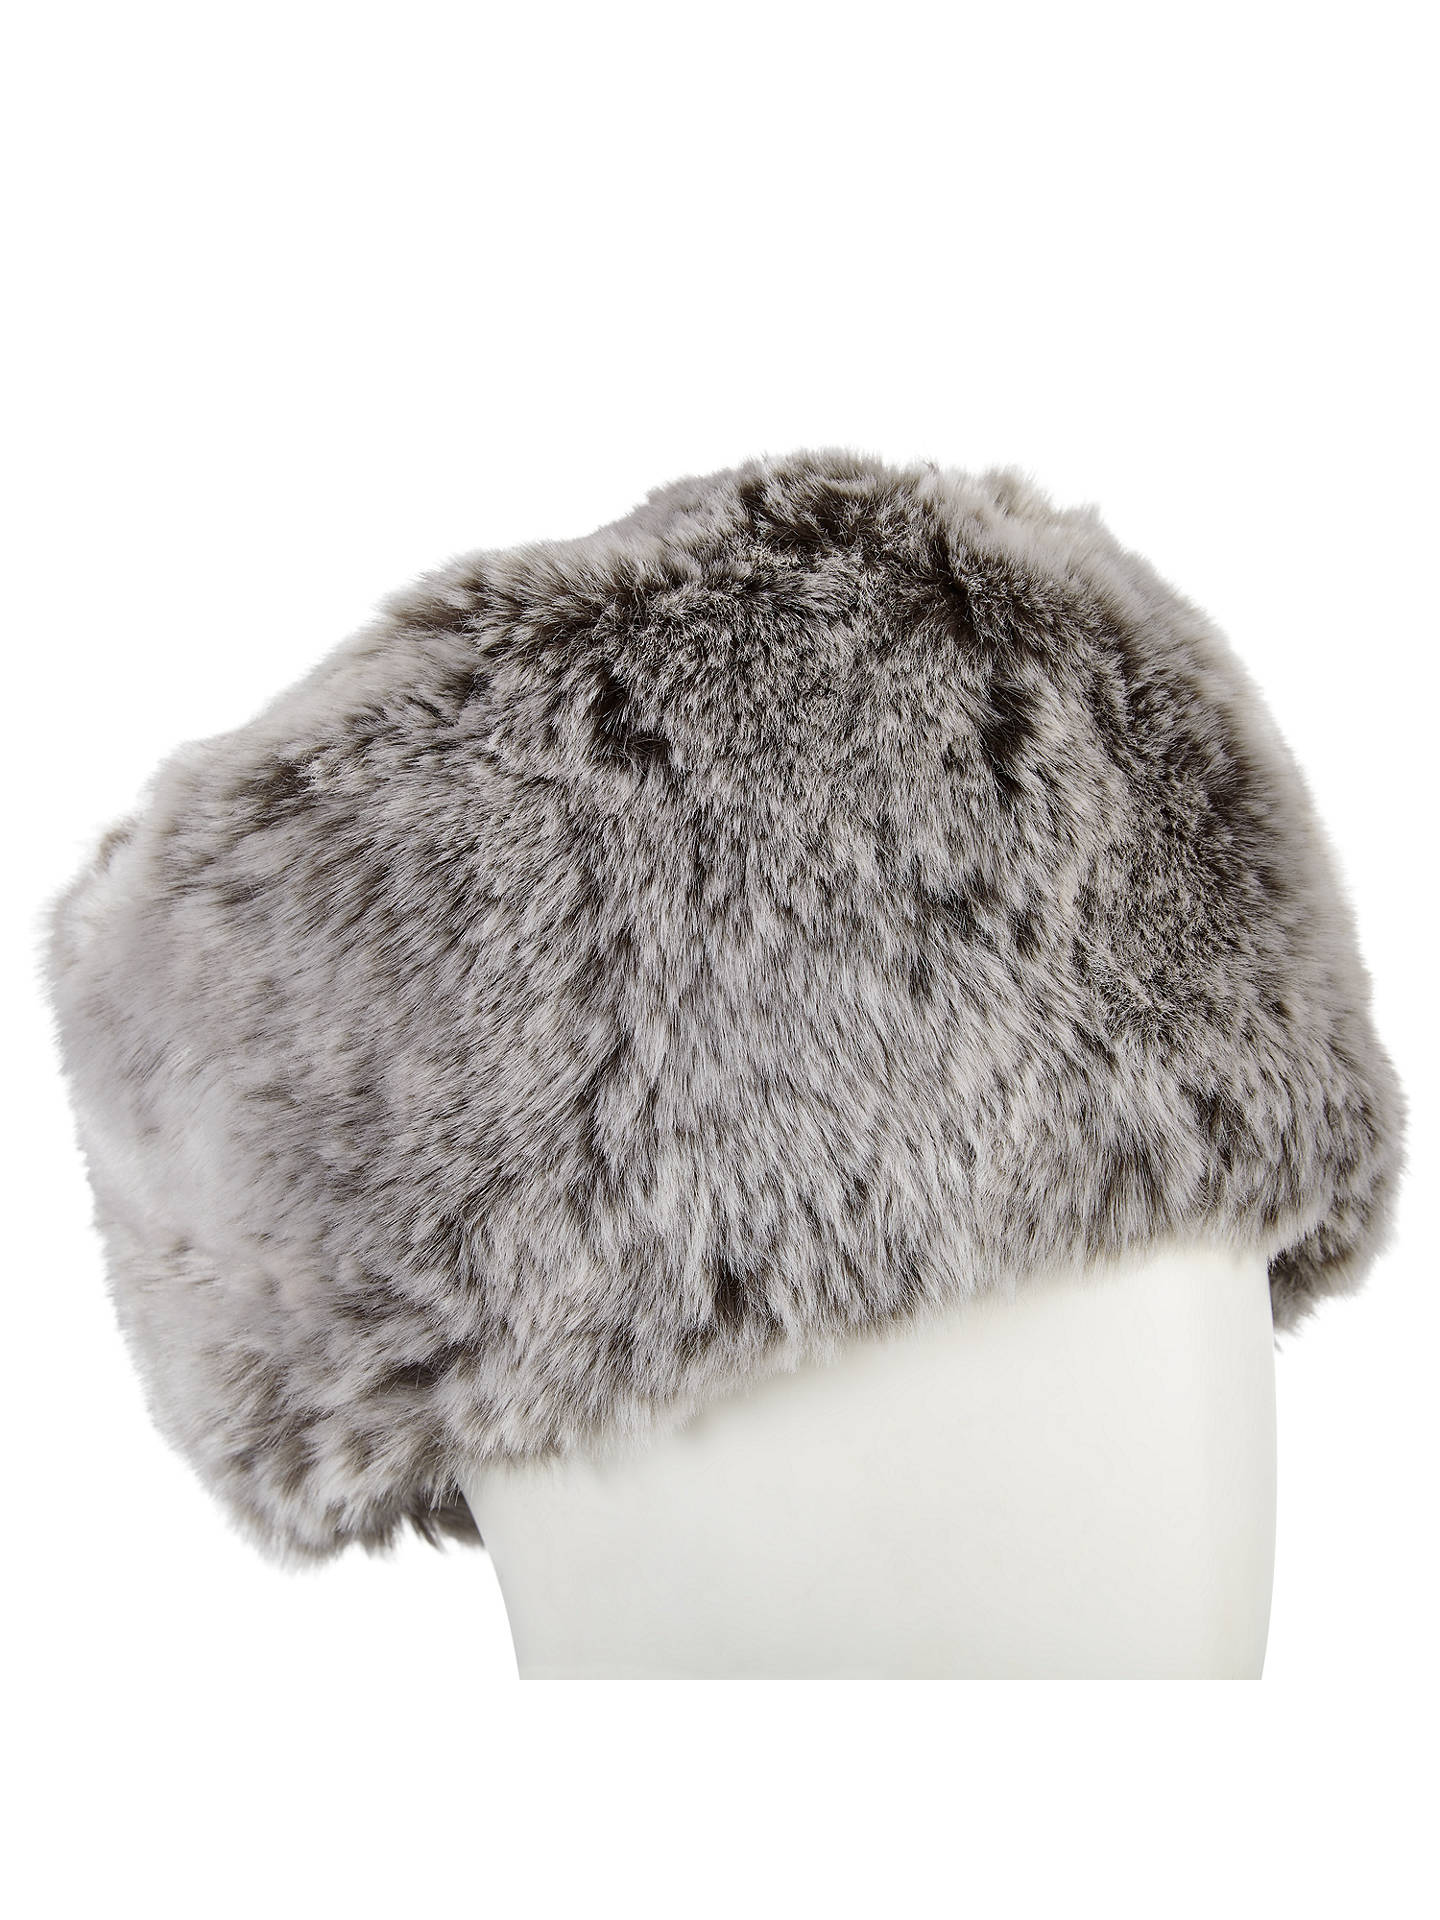 06bef6d9f John Lewis & Partners Faux Fur Cossack Hat at John Lewis & Partners